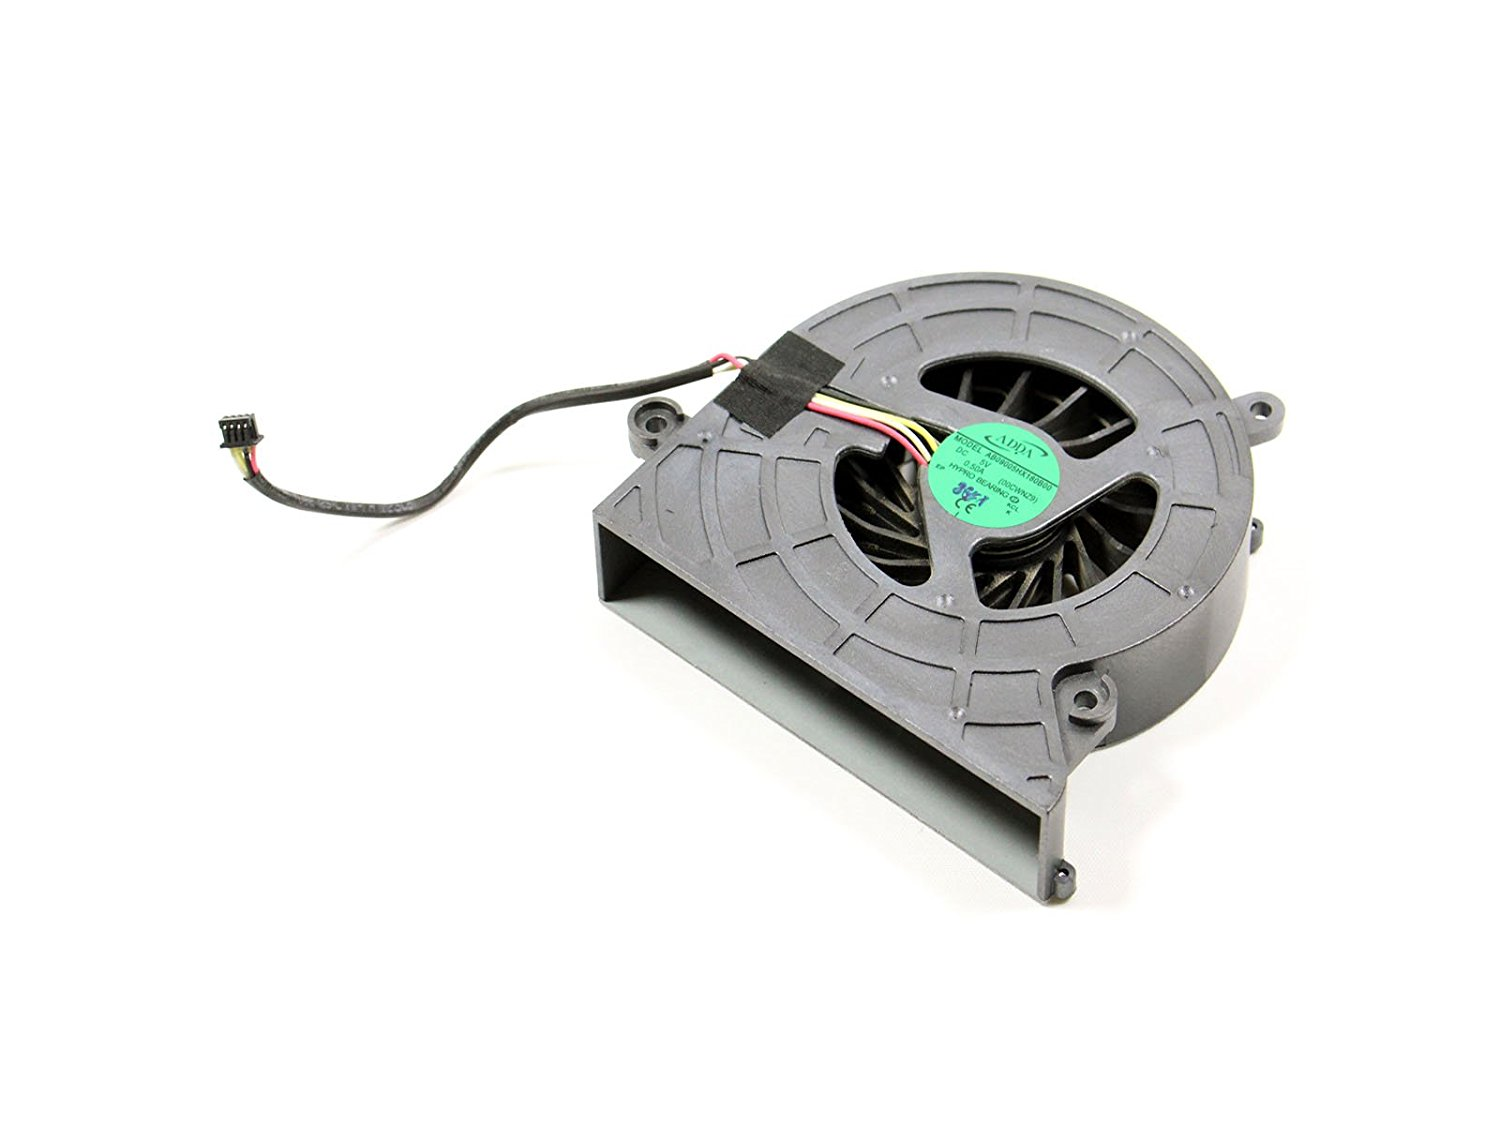 HP AB09005HX180B00 PC 5V DC 0.5A Laptop CPU Cooling Fan